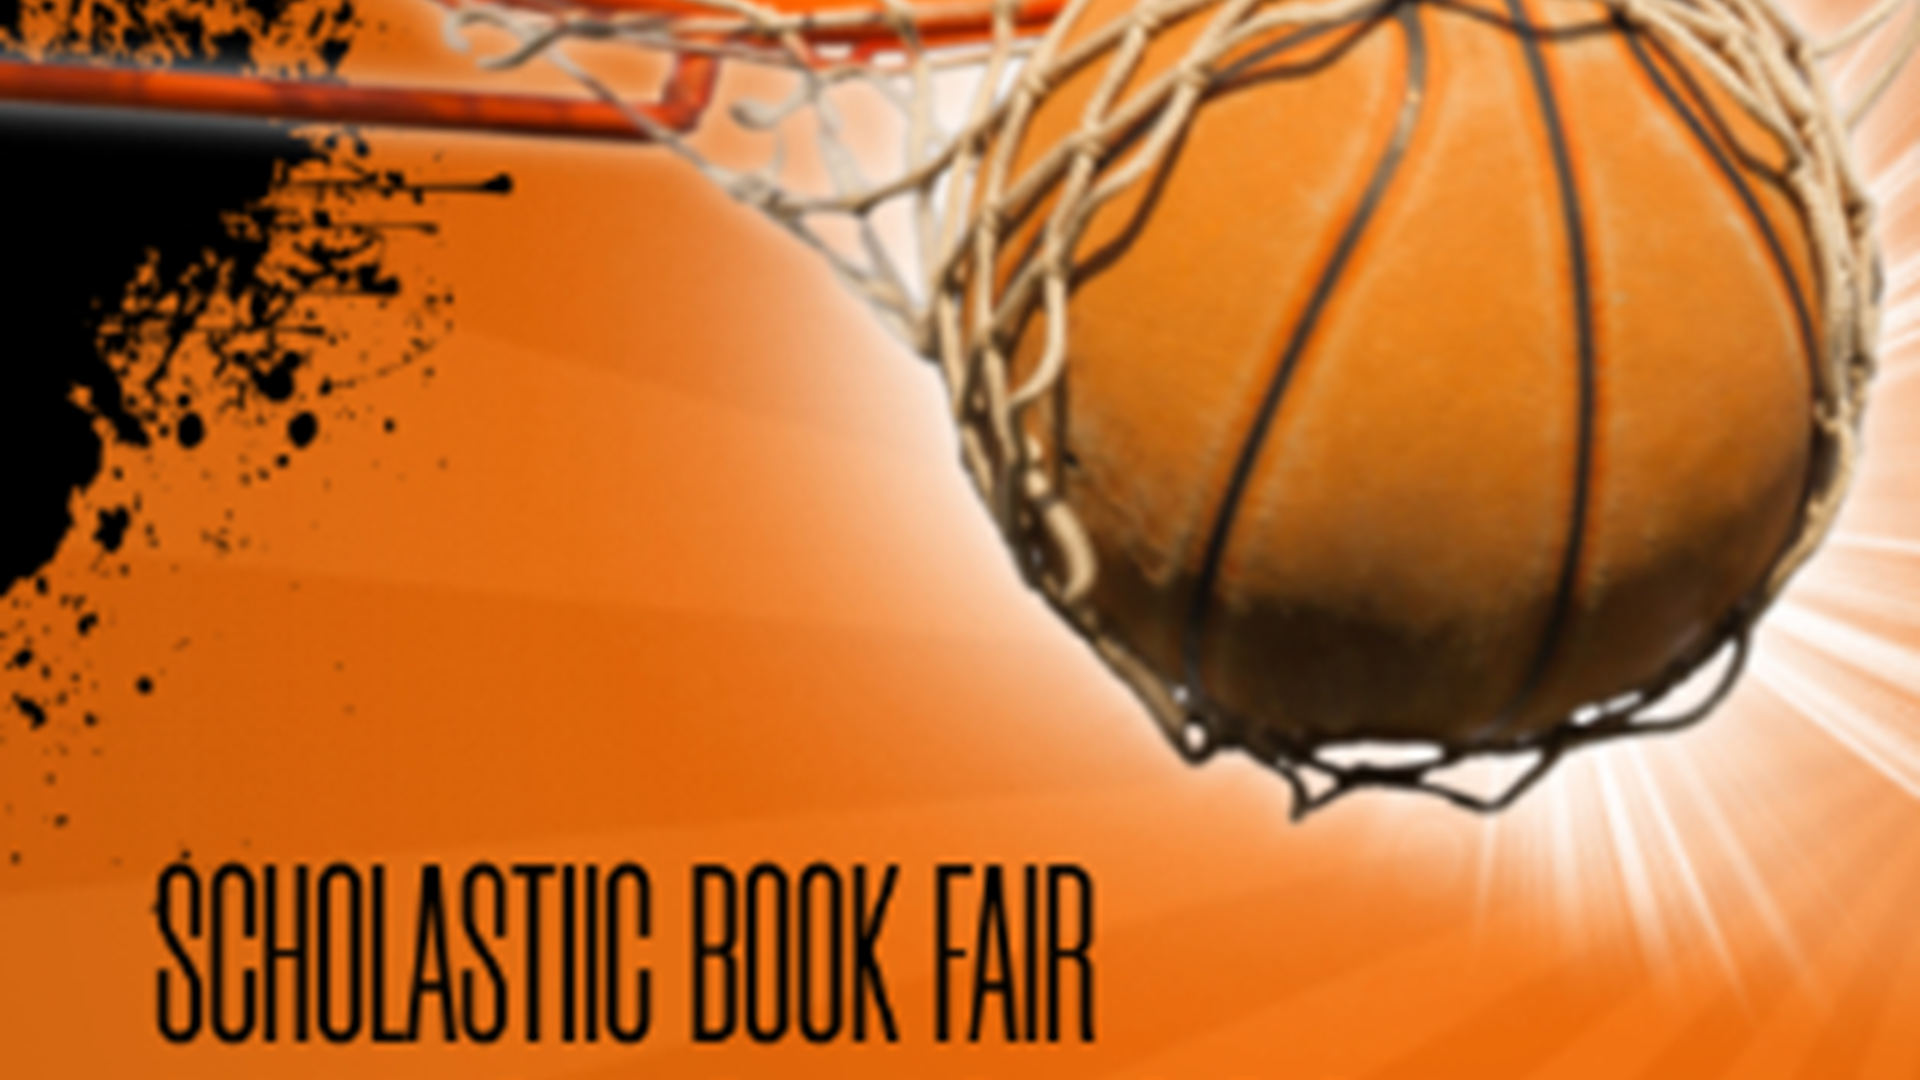 March Madness Book Fair